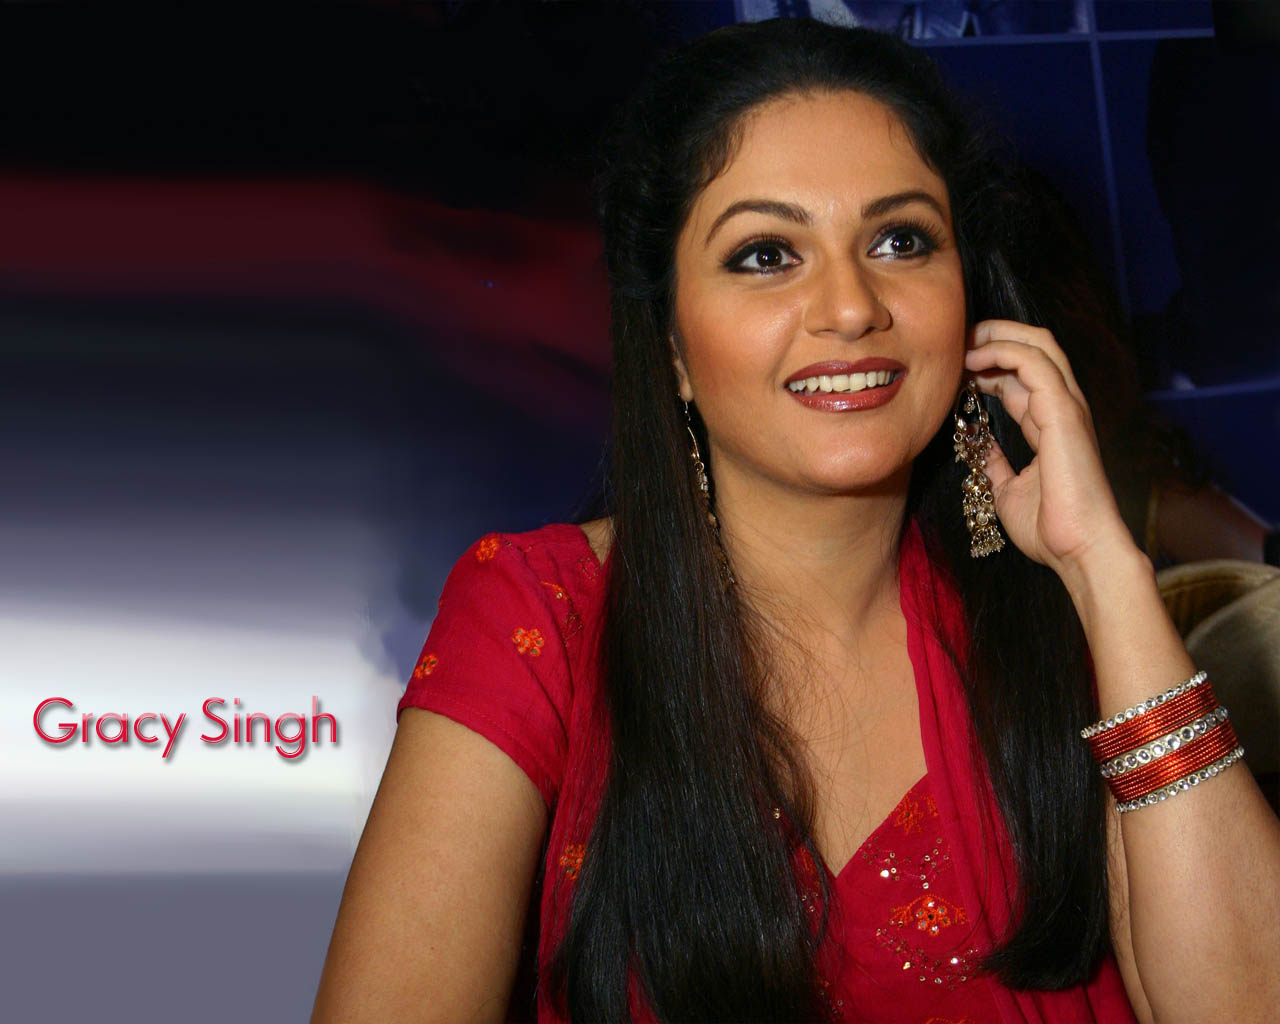 Fashionewallpaperblogspotcom Gracy Singh Wallpapers -4968